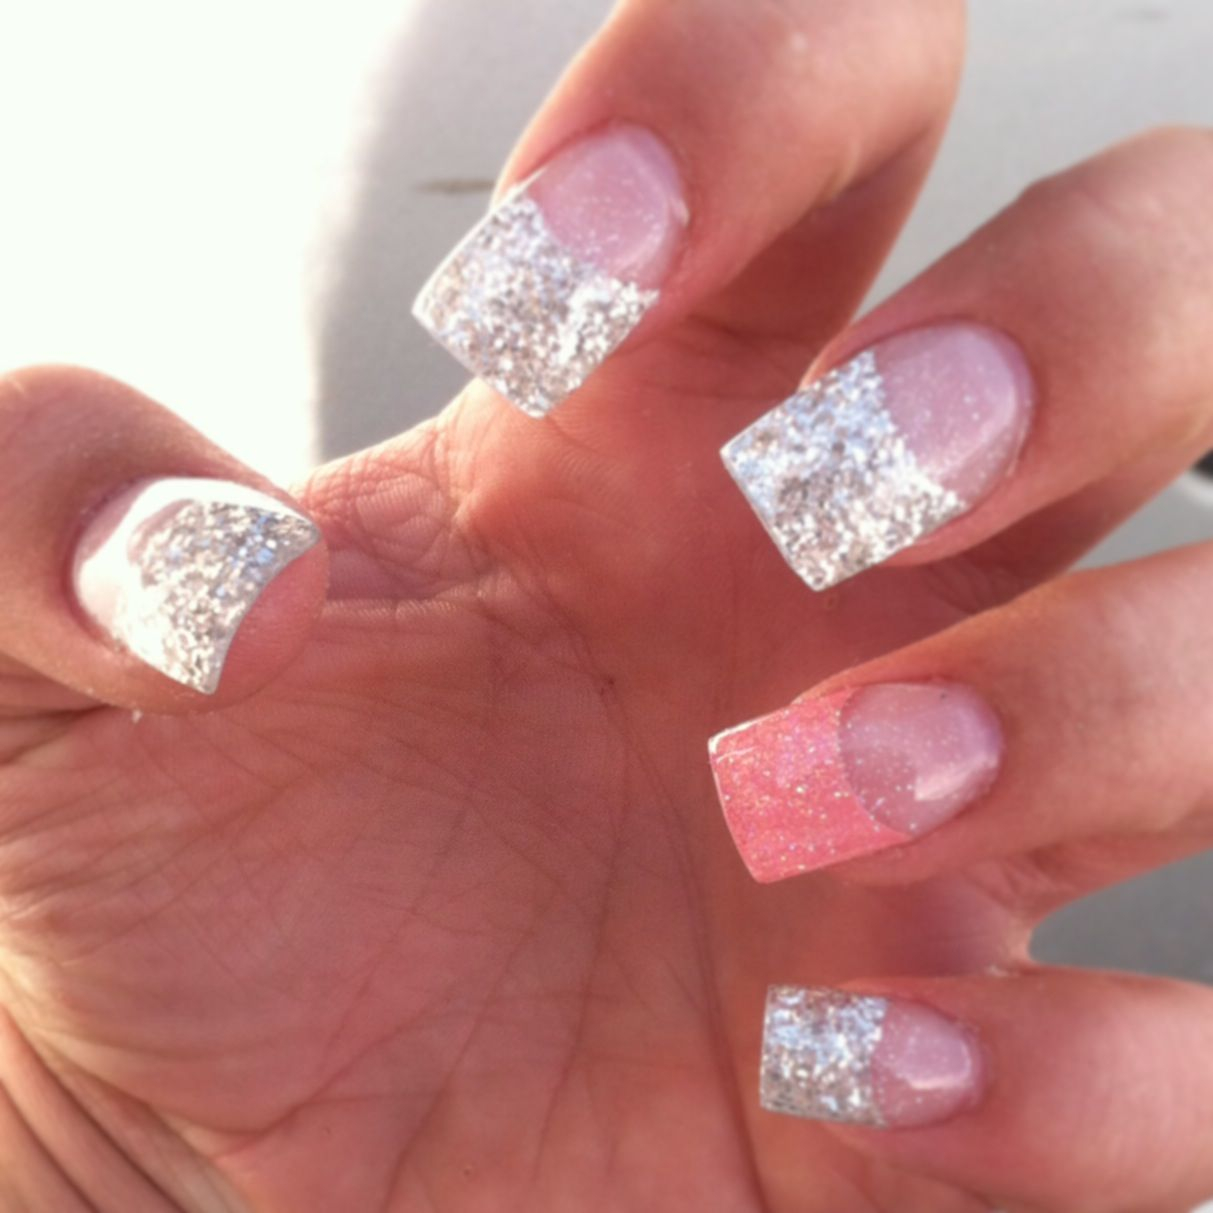 Gel Acrylic Colored Tip Nails Beauty Nails Design French Tip Acrylic Nails Acrylic Nail Tips